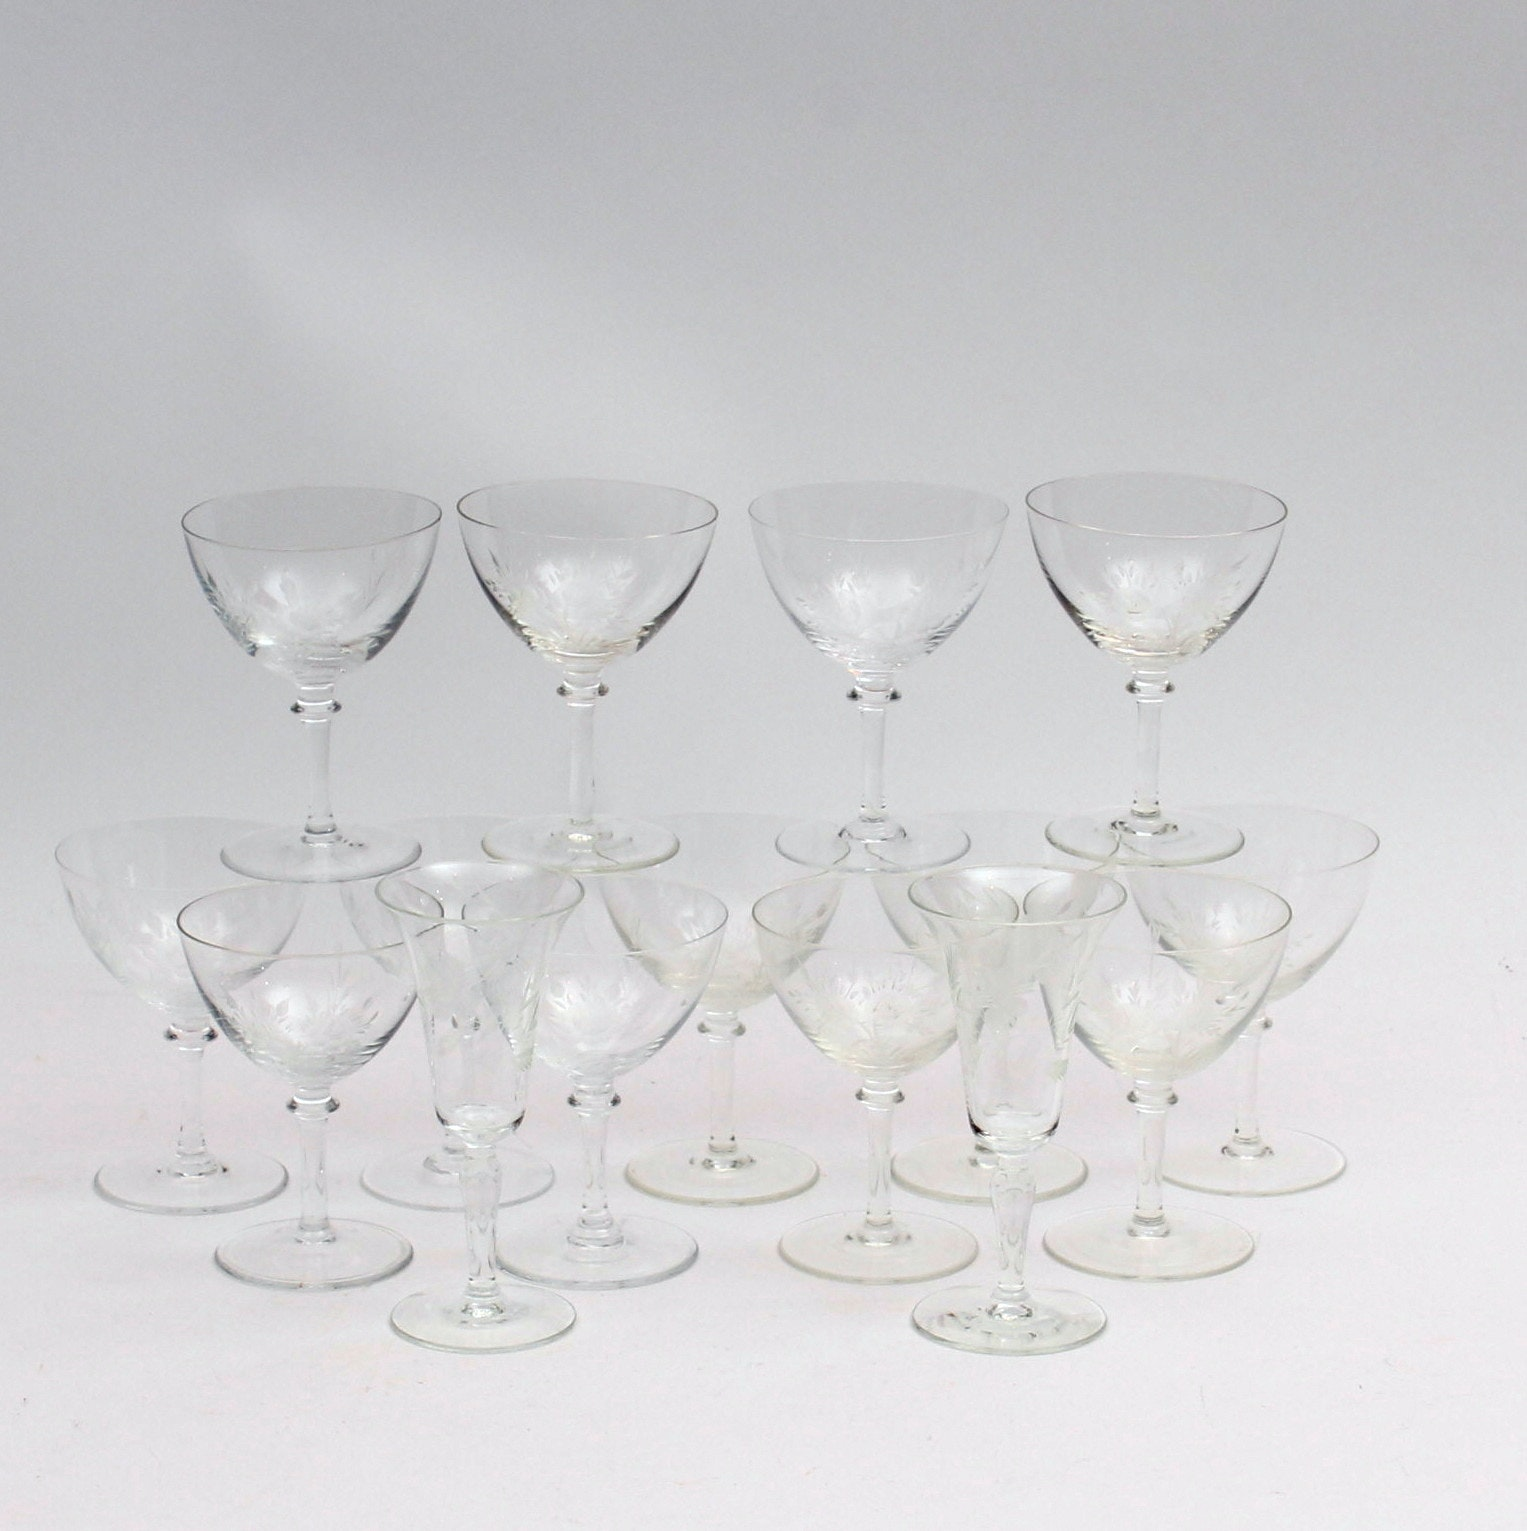 Hand-Etched Glassware